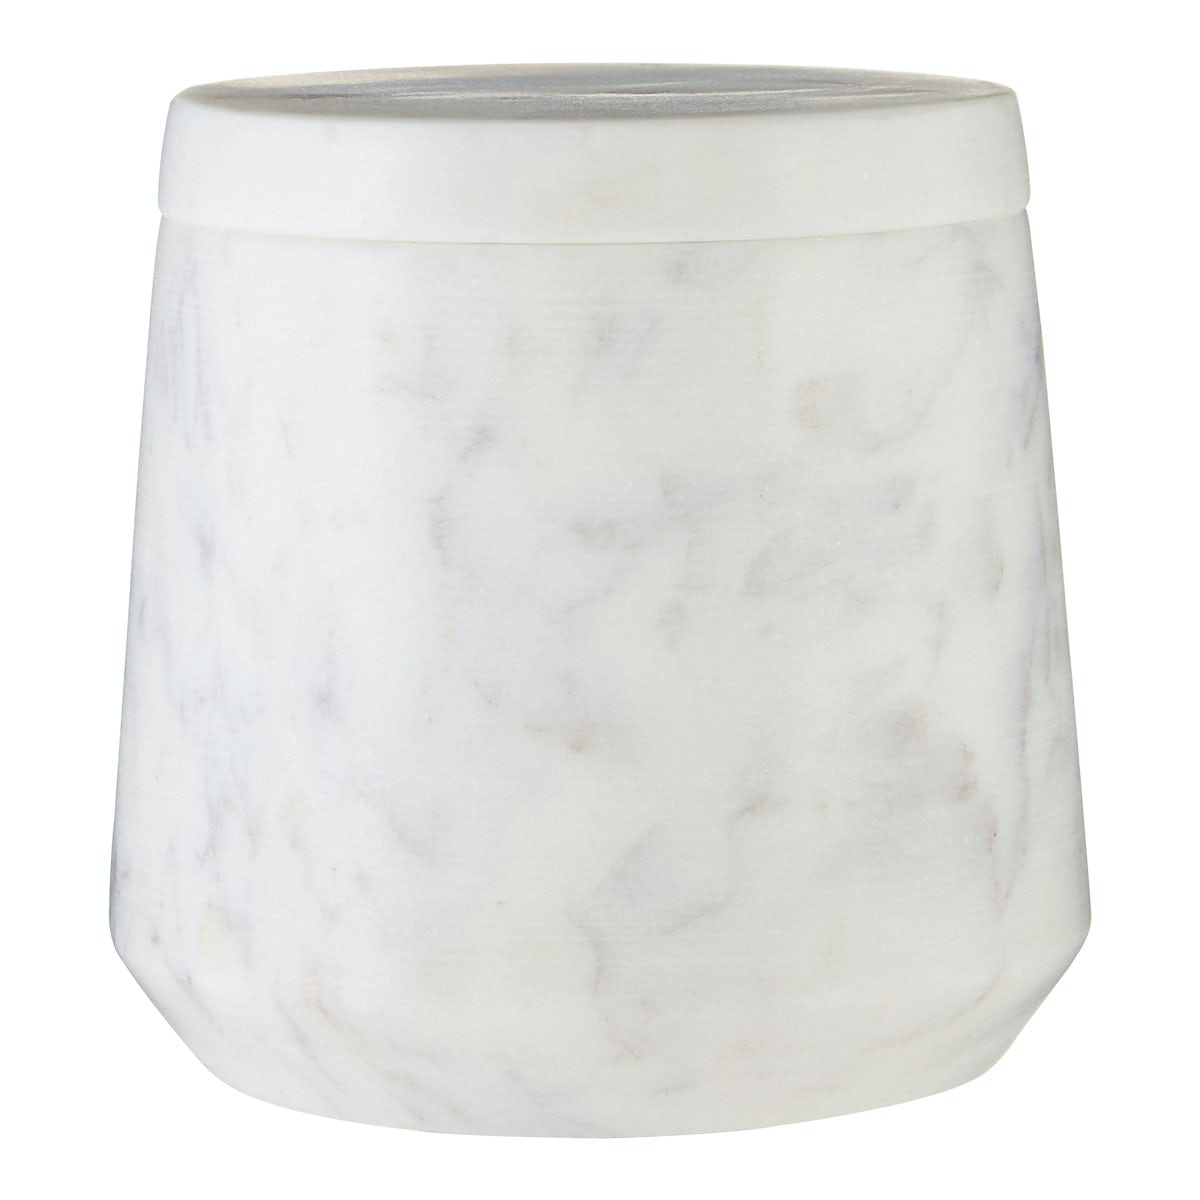 Mode White marble storage jar